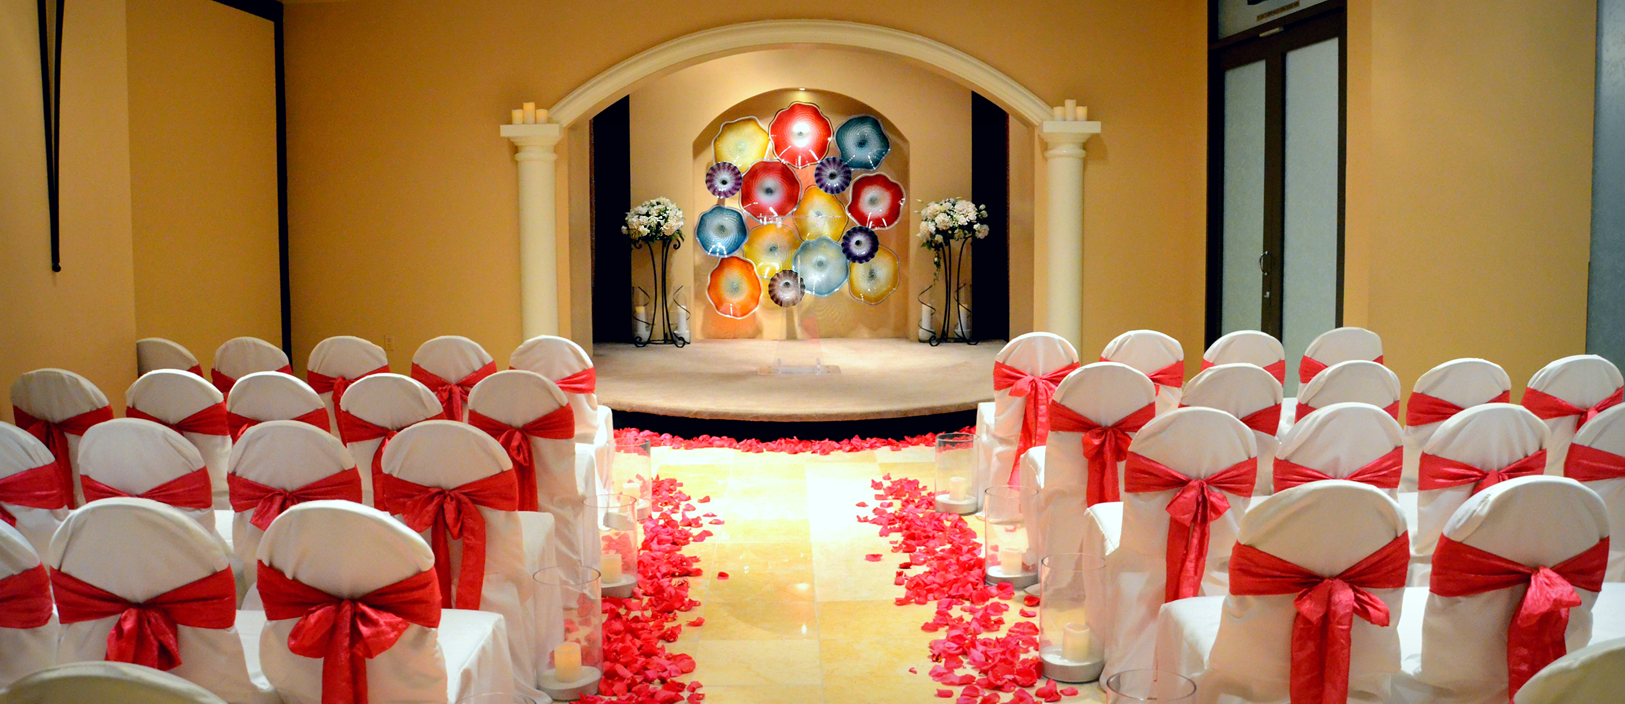 Pink Wedding Décor Prink Rose Petals The Chapel At Planet Hollywood Las Vegas Weddings Https